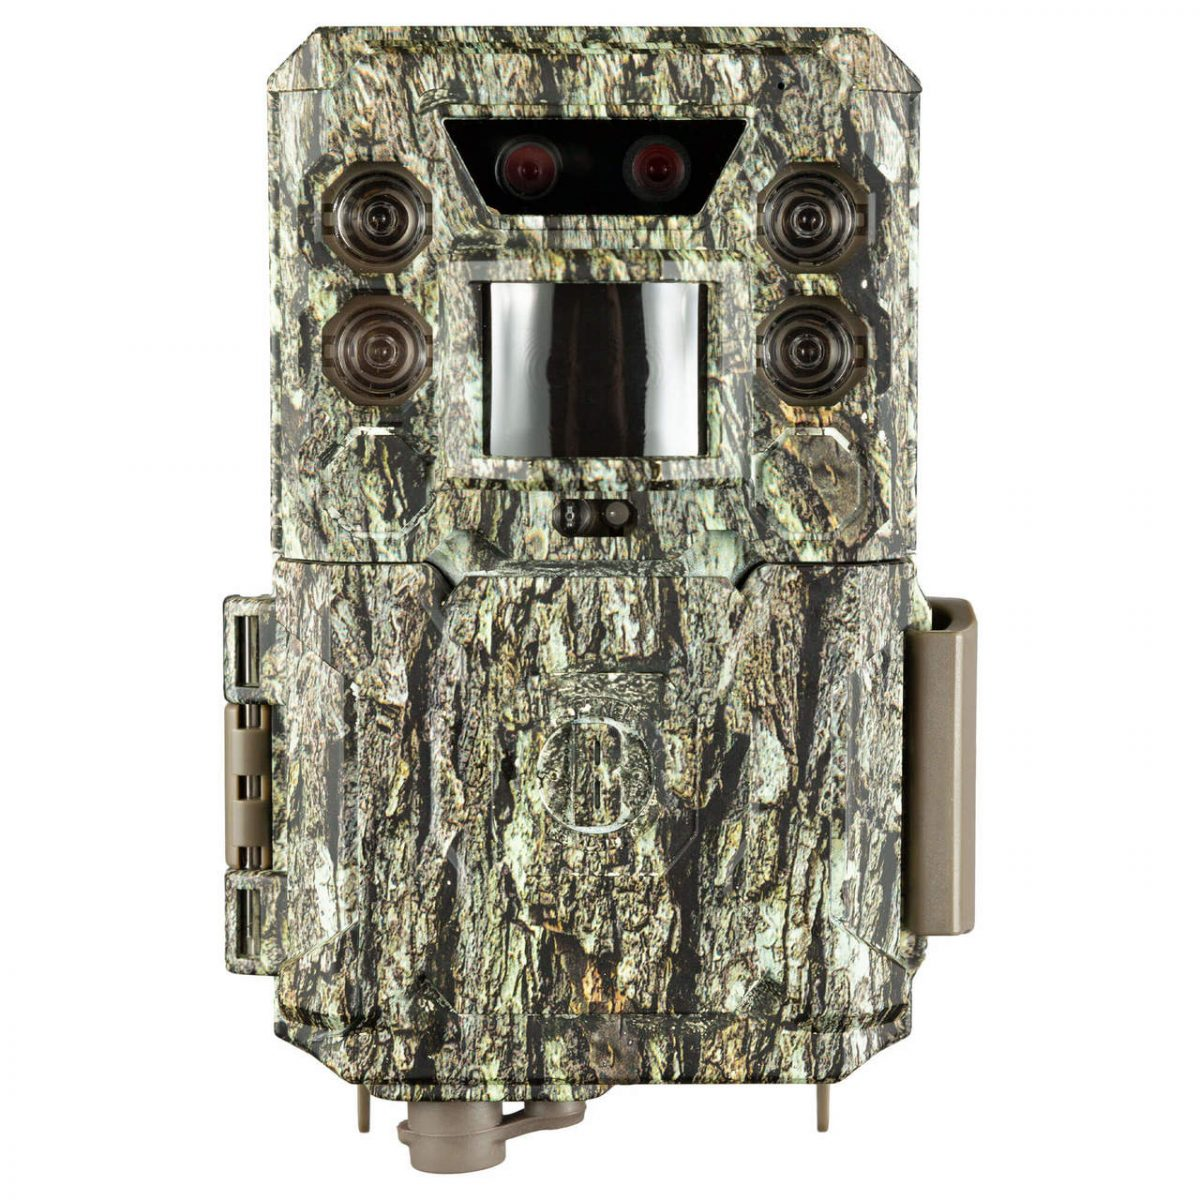 Bushnell Aggressor Wireless, trail camera